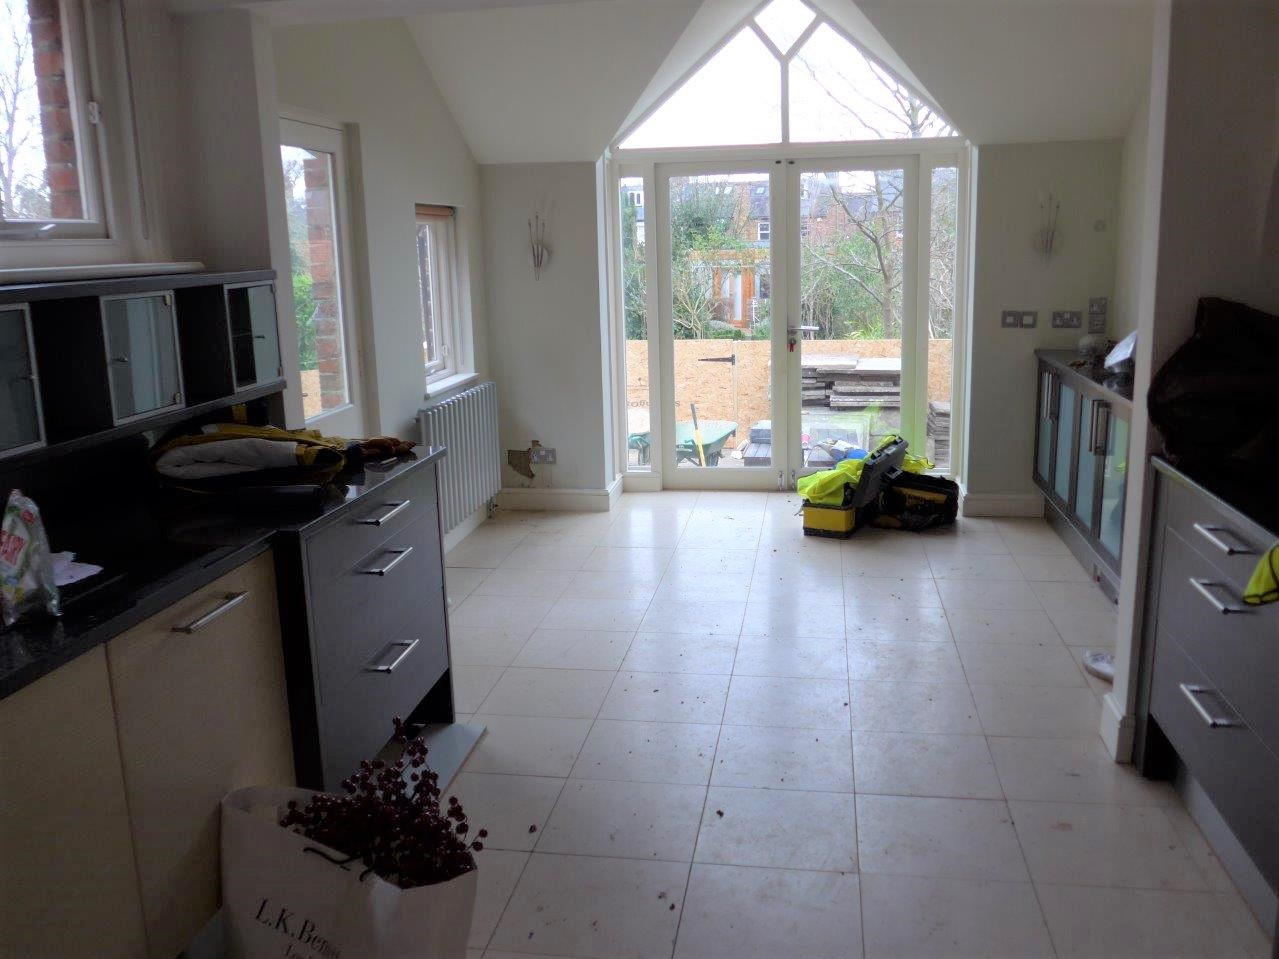 Kitchen before extension and renovation